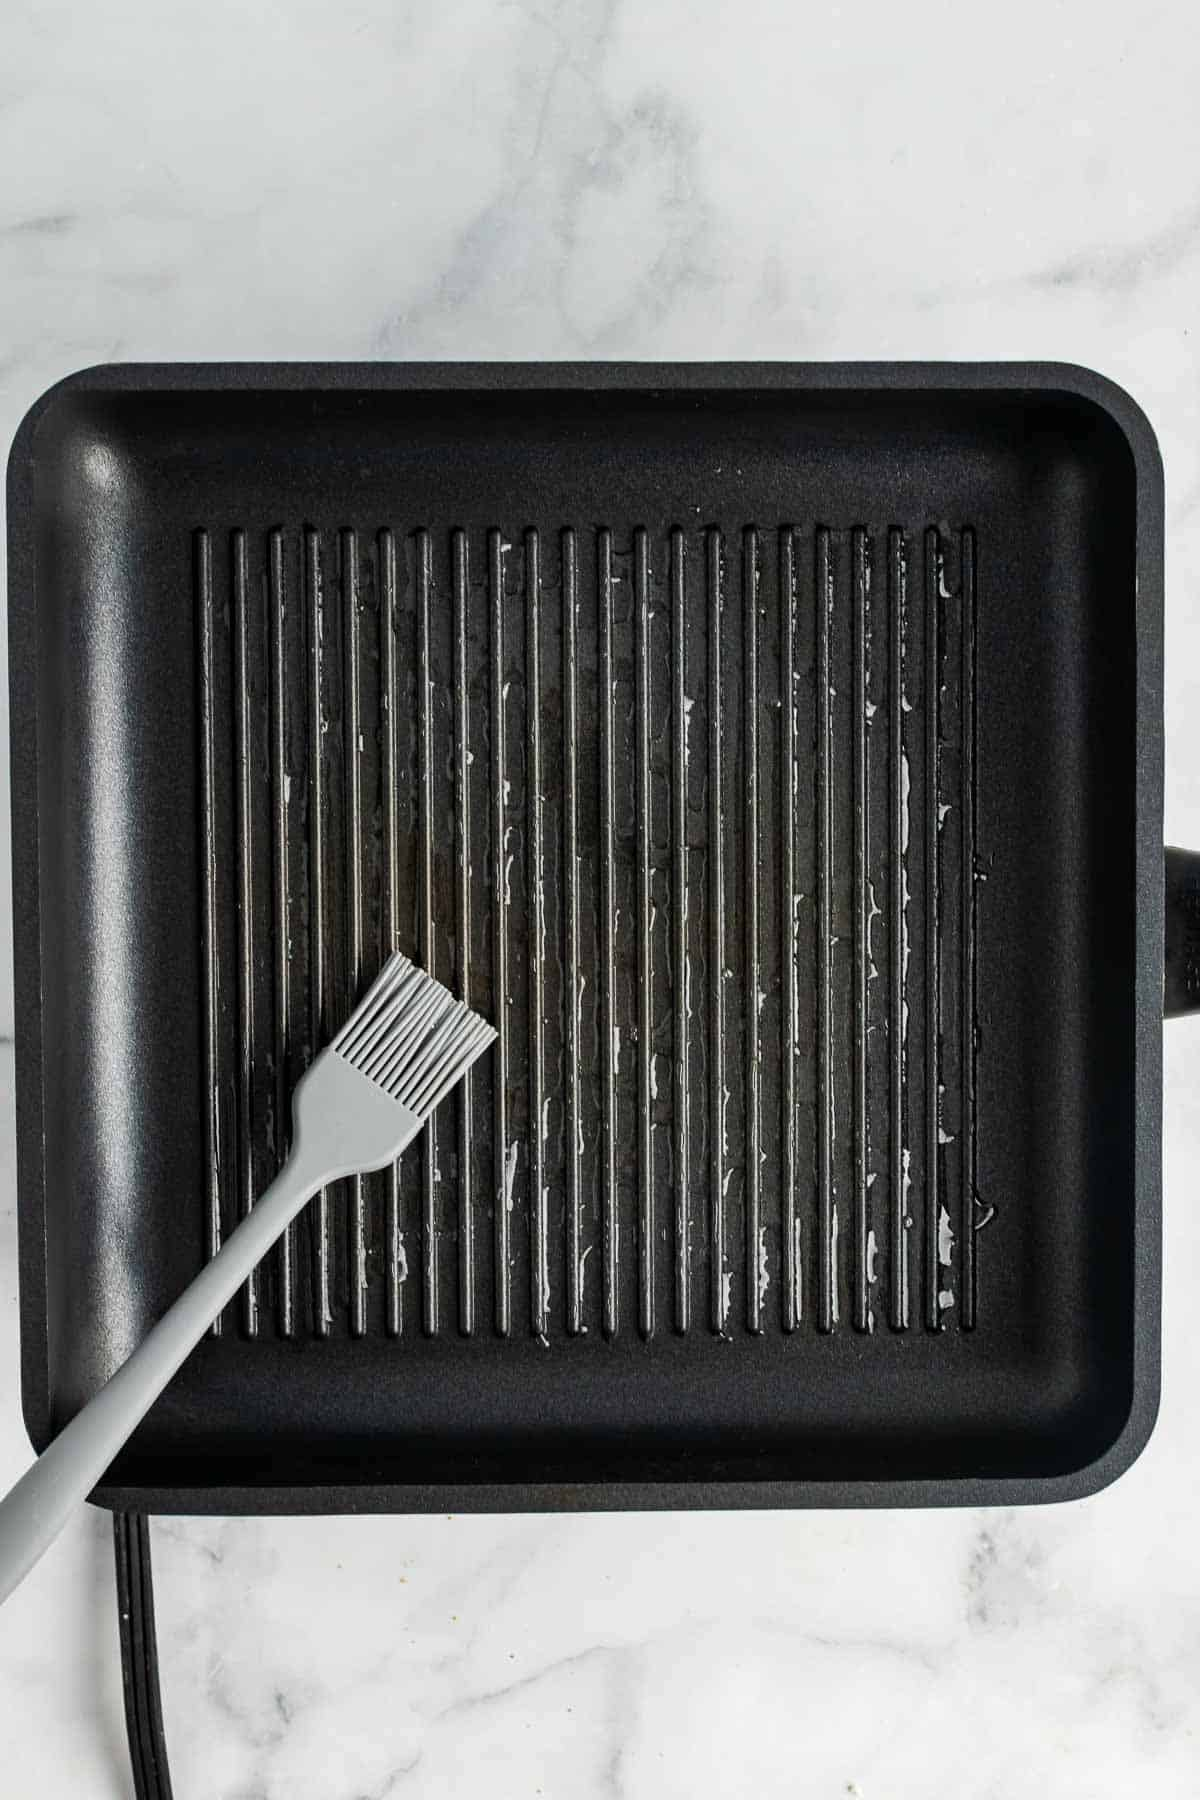 Grilling pan being coated with oil